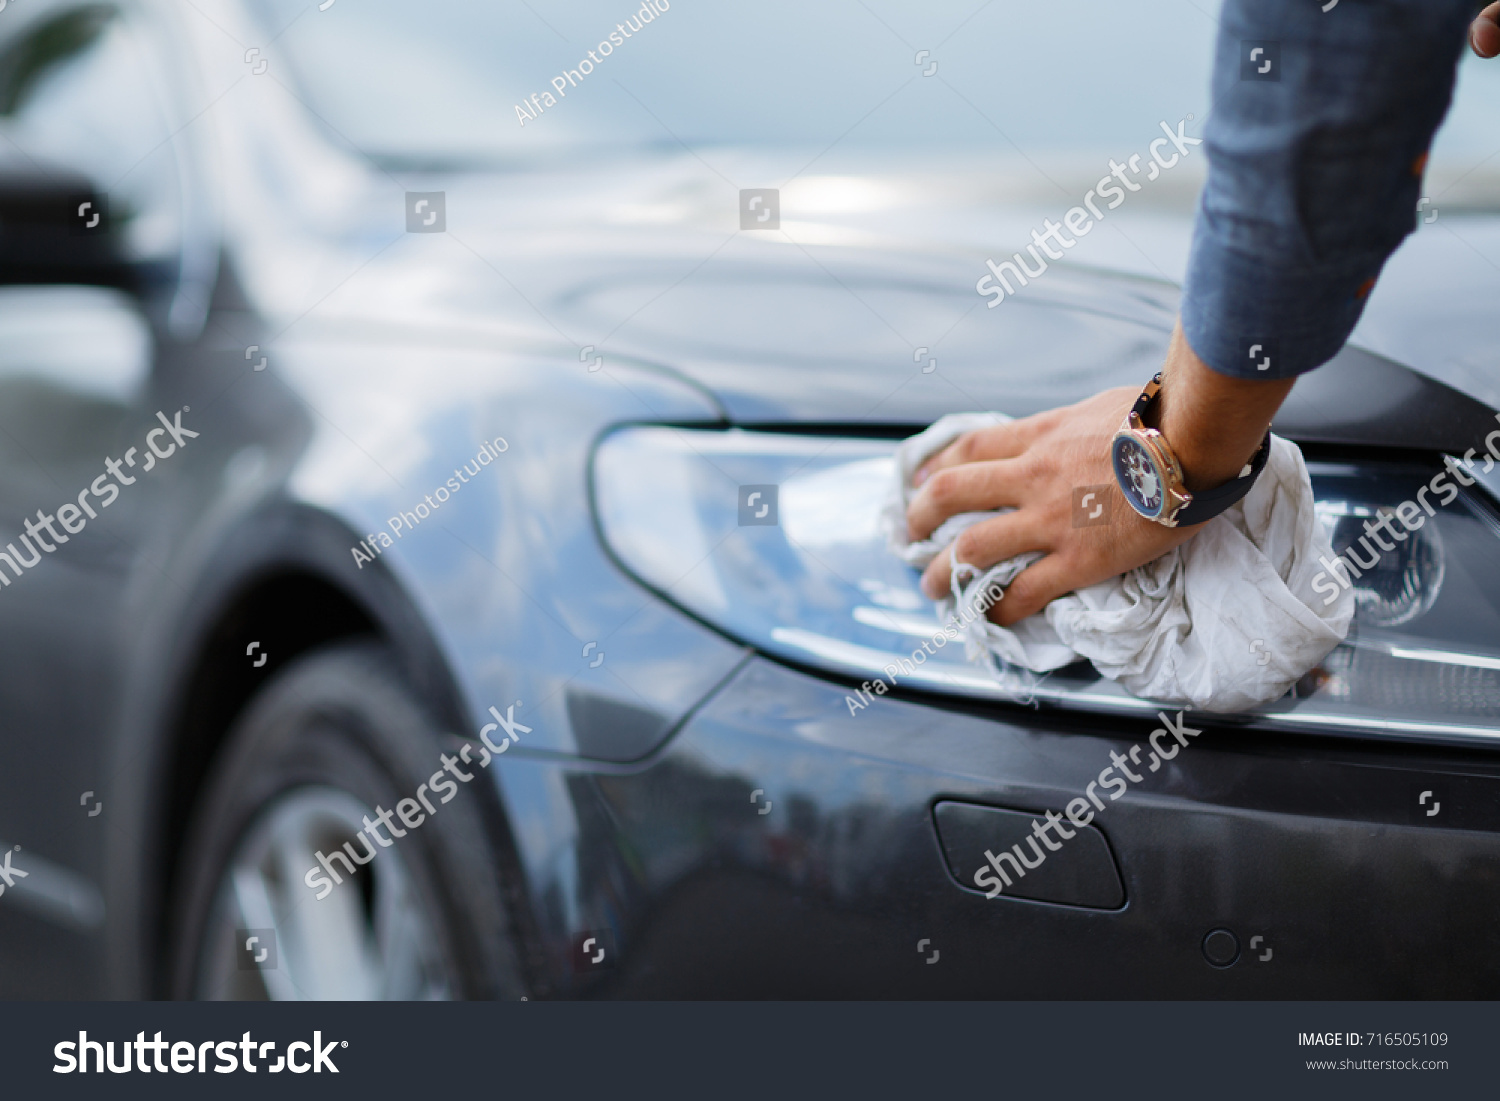 Buying Used Car Cleaning Cars Sale Stock Photo (Royalty Free ...